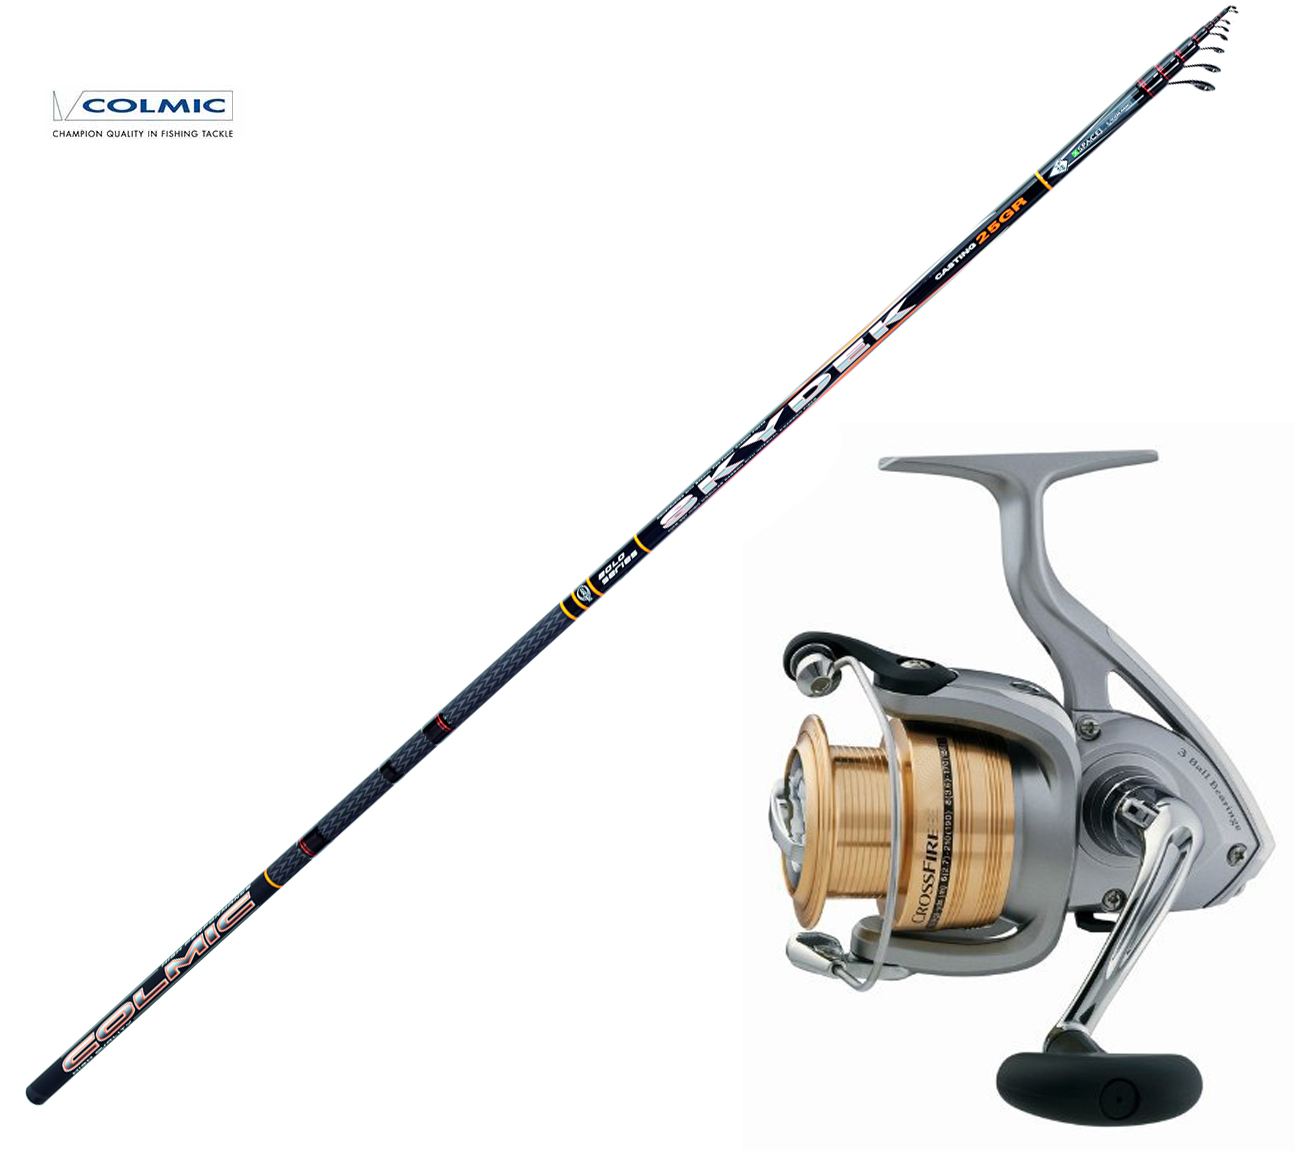 KP2580 Kit Bolognese Fishing Rod Colmic Skydek 5 m +